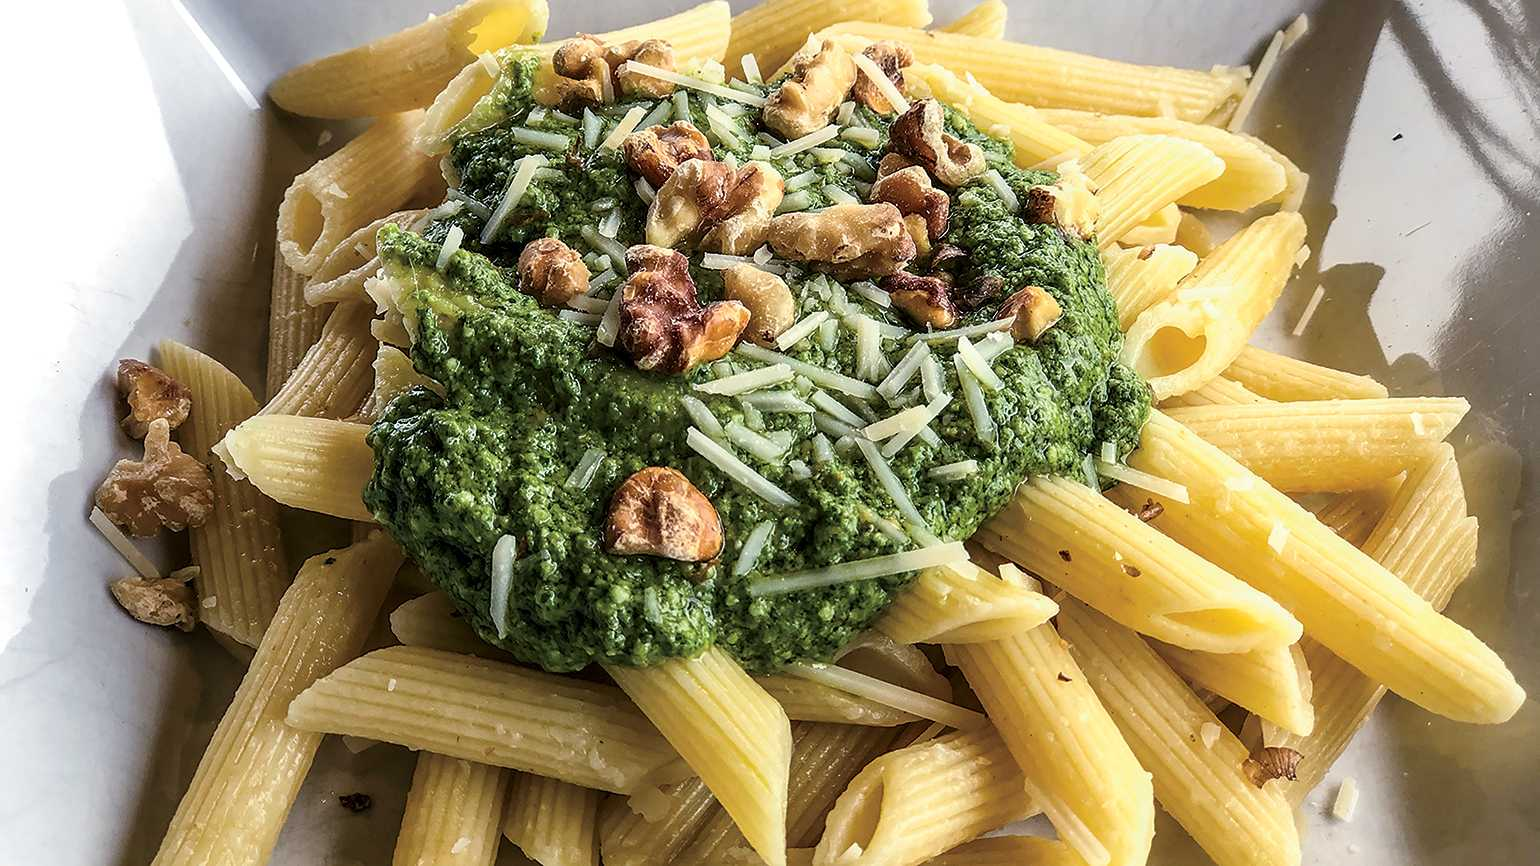 Otto's Green Pesto; photo courtesy Elizabeth Rudolph